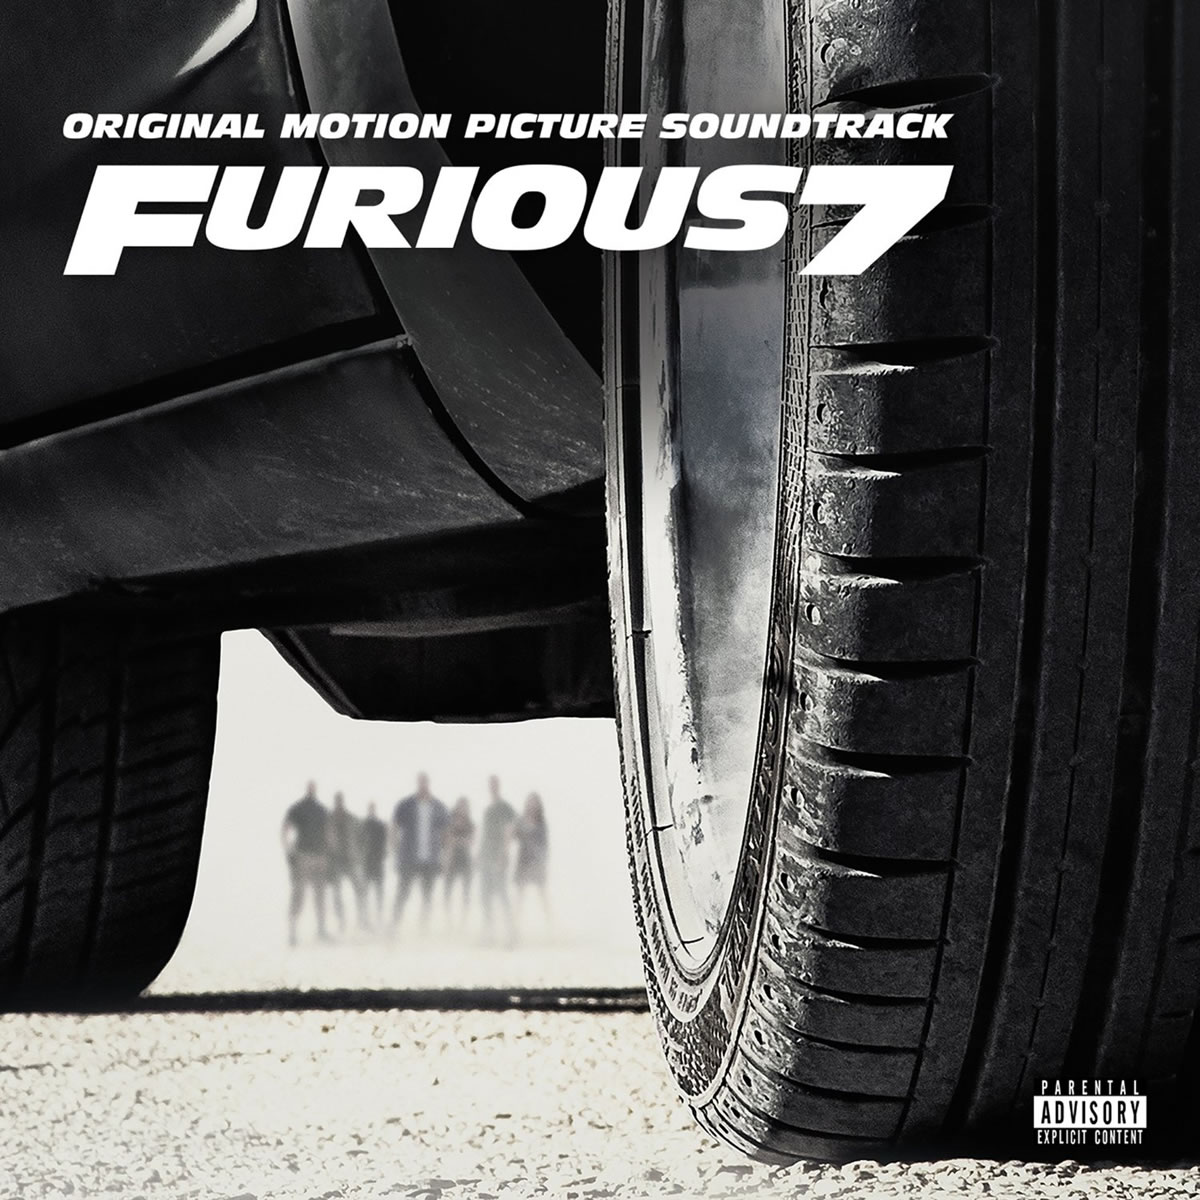 FAST & FURIOUS 7 - THE ORIGINAL MOTION PICTURE SOUNDTRACK (AUDIO CD)